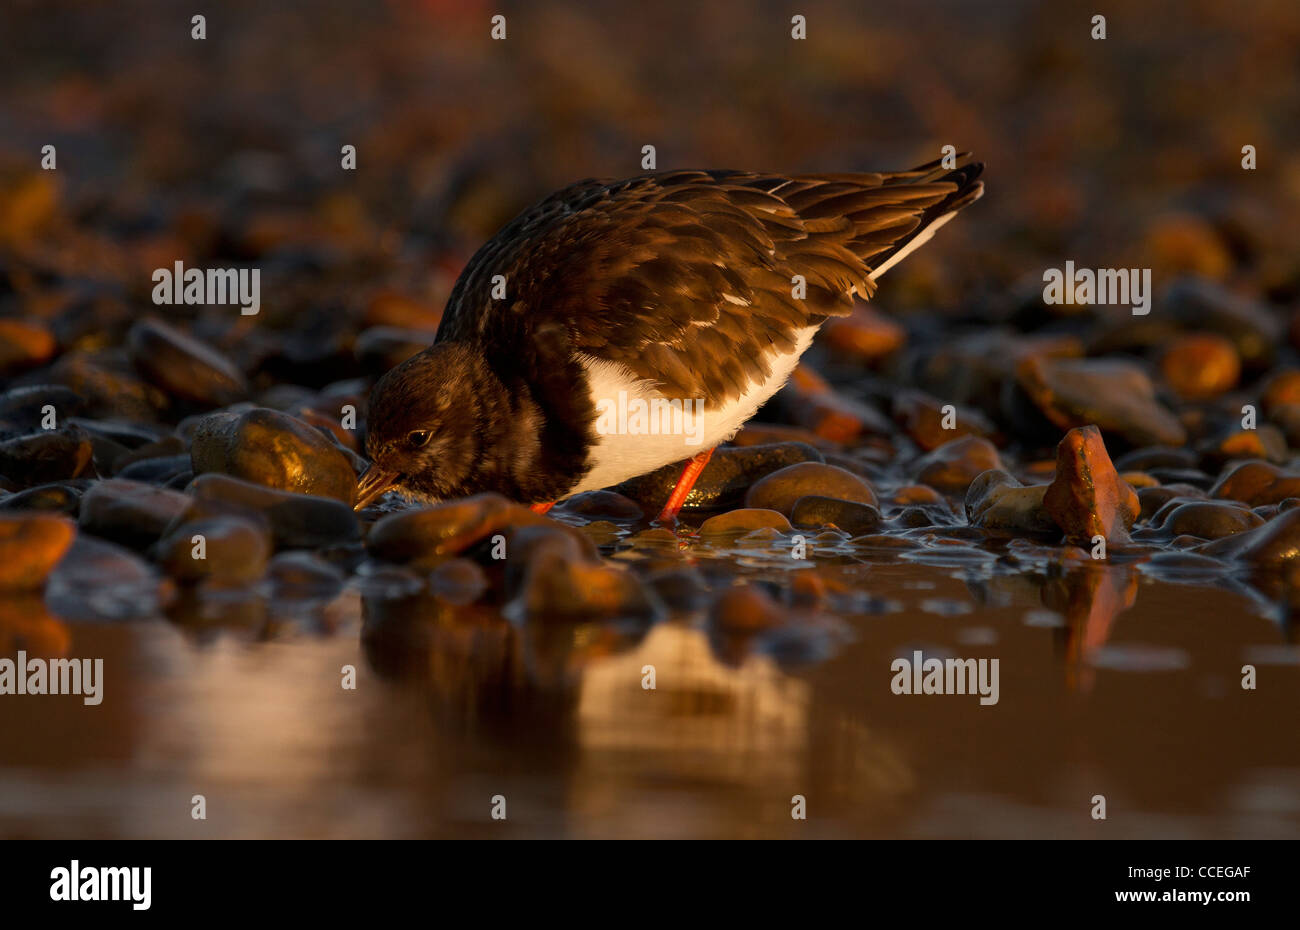 Turnstone, Arenaria interpres turning stones and pebbles on the beach looking for food. - Stock Image